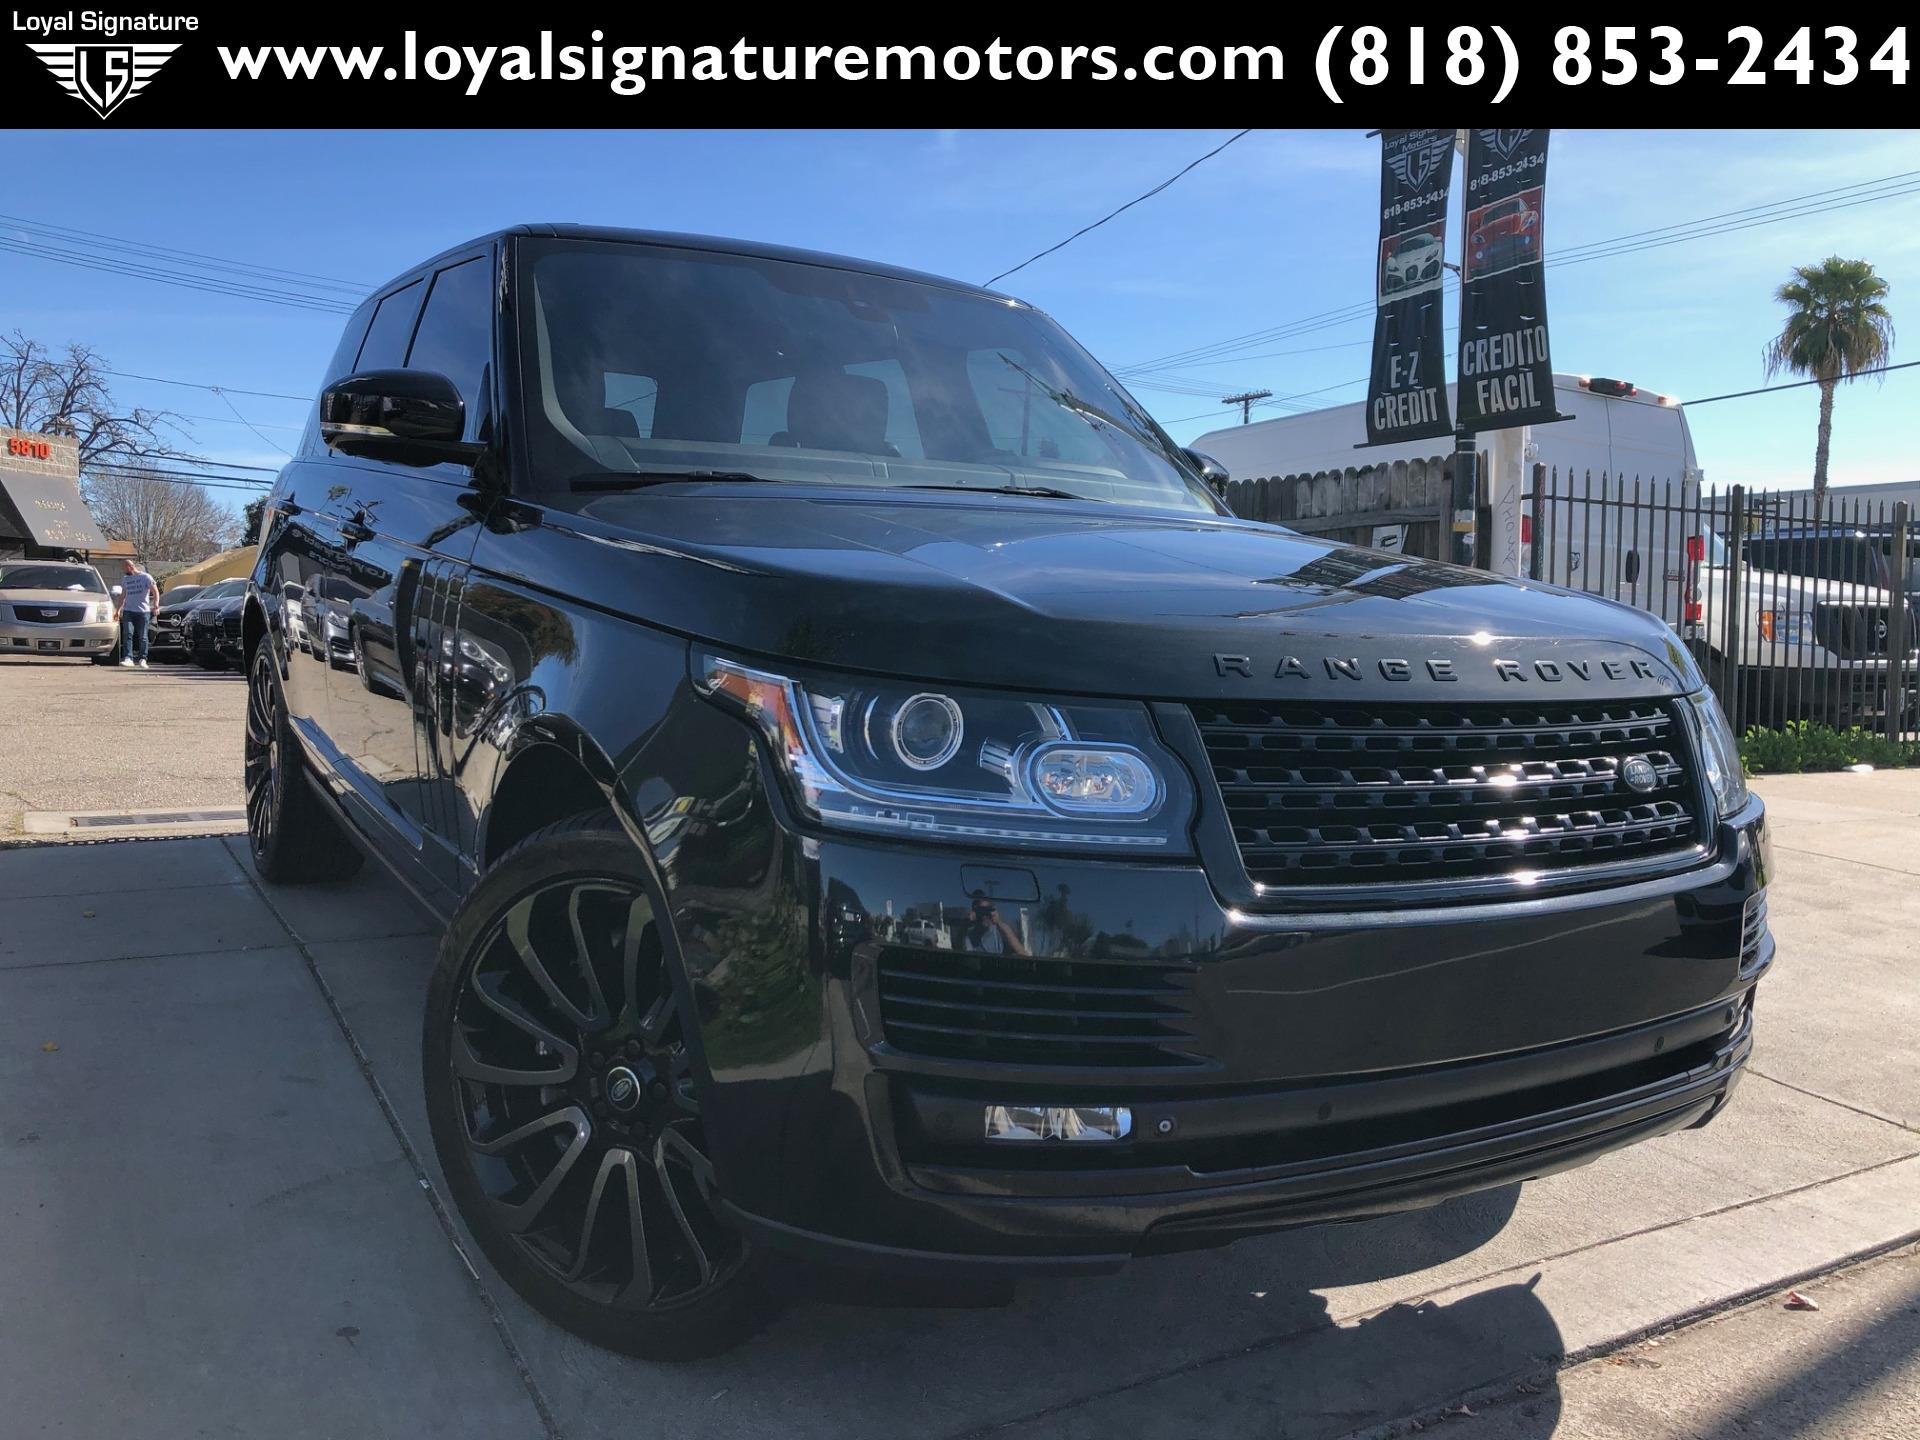 Used 2014 Land Rover Range Rover Supercharged Ebony Edition | Van Nuys, CA